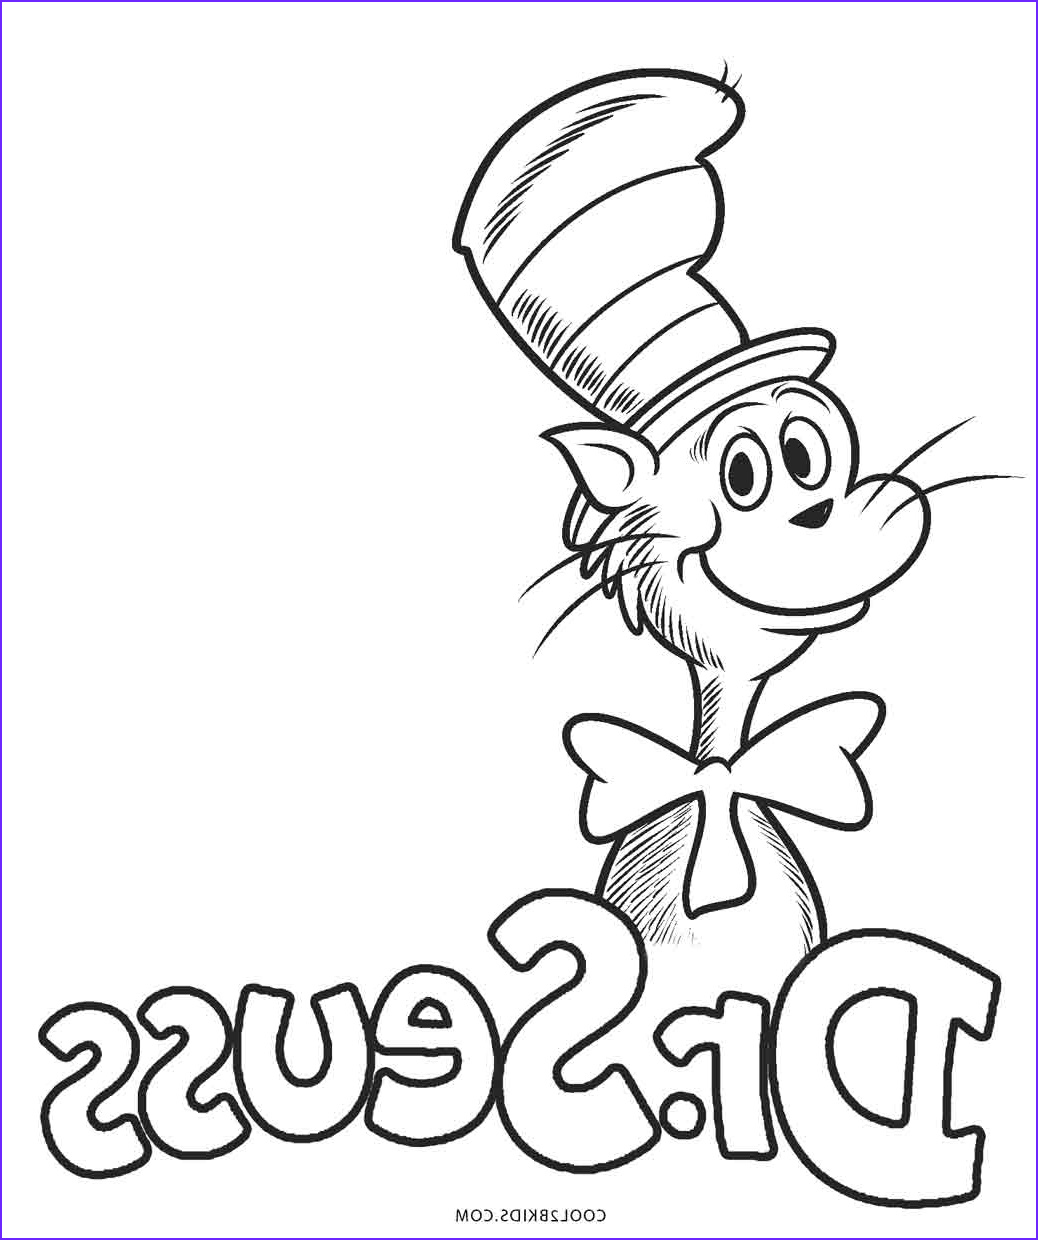 Dr.seuss Printable Coloring Pages Best Of Photos Free Printable Dr Seuss Coloring Pages for Kids